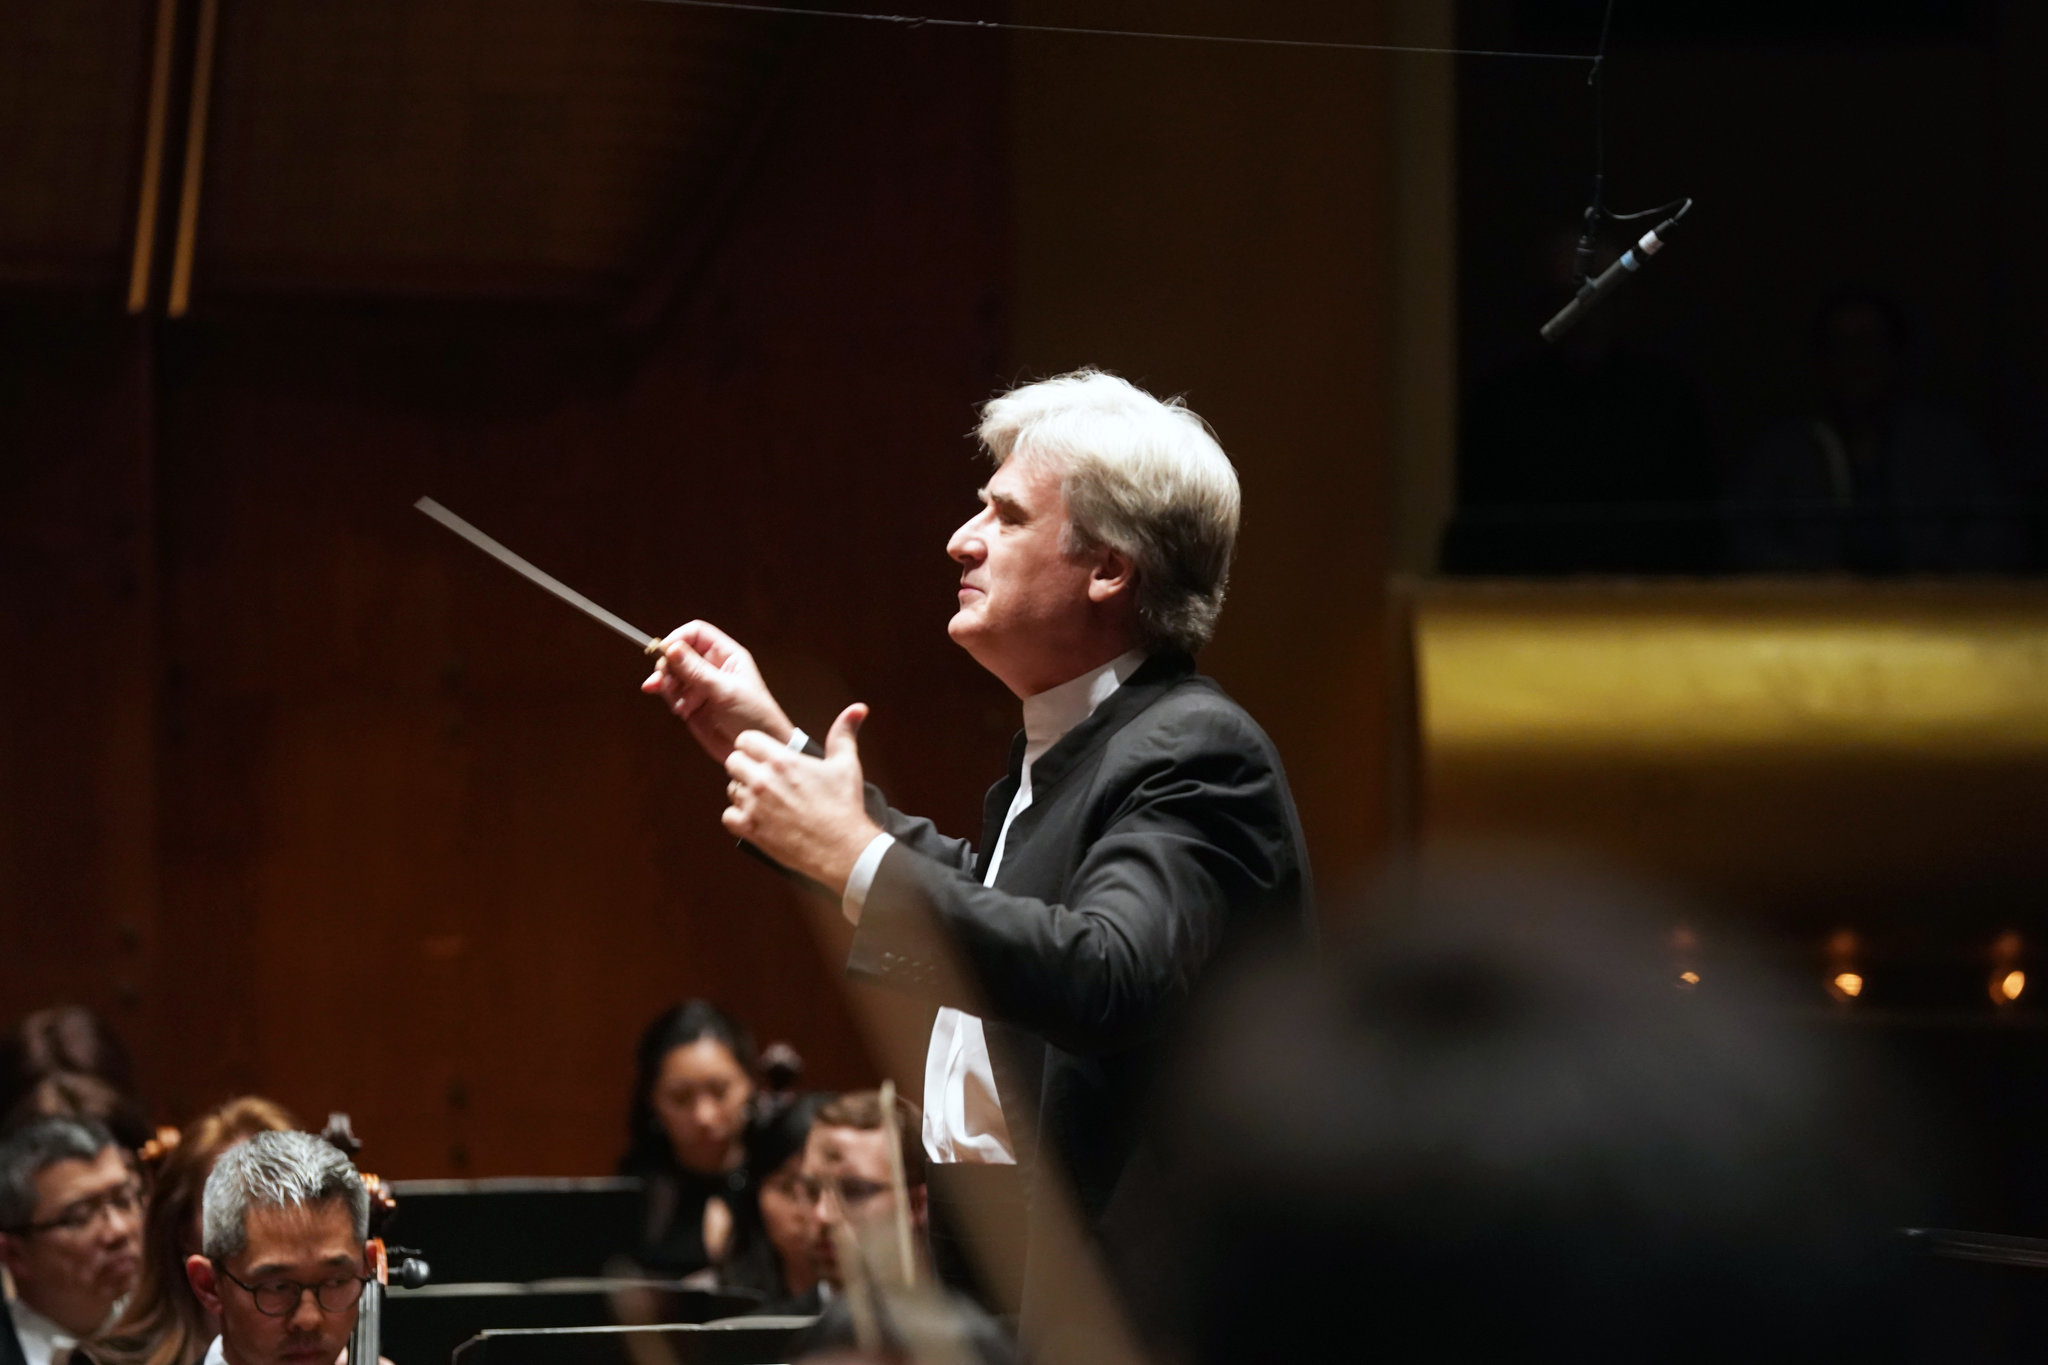 THOMAS DAUSGAARD HAS DISCUSSION ON SIBELIUS'S KULLERVO WITH GRAMOPHONE MAGAZINE